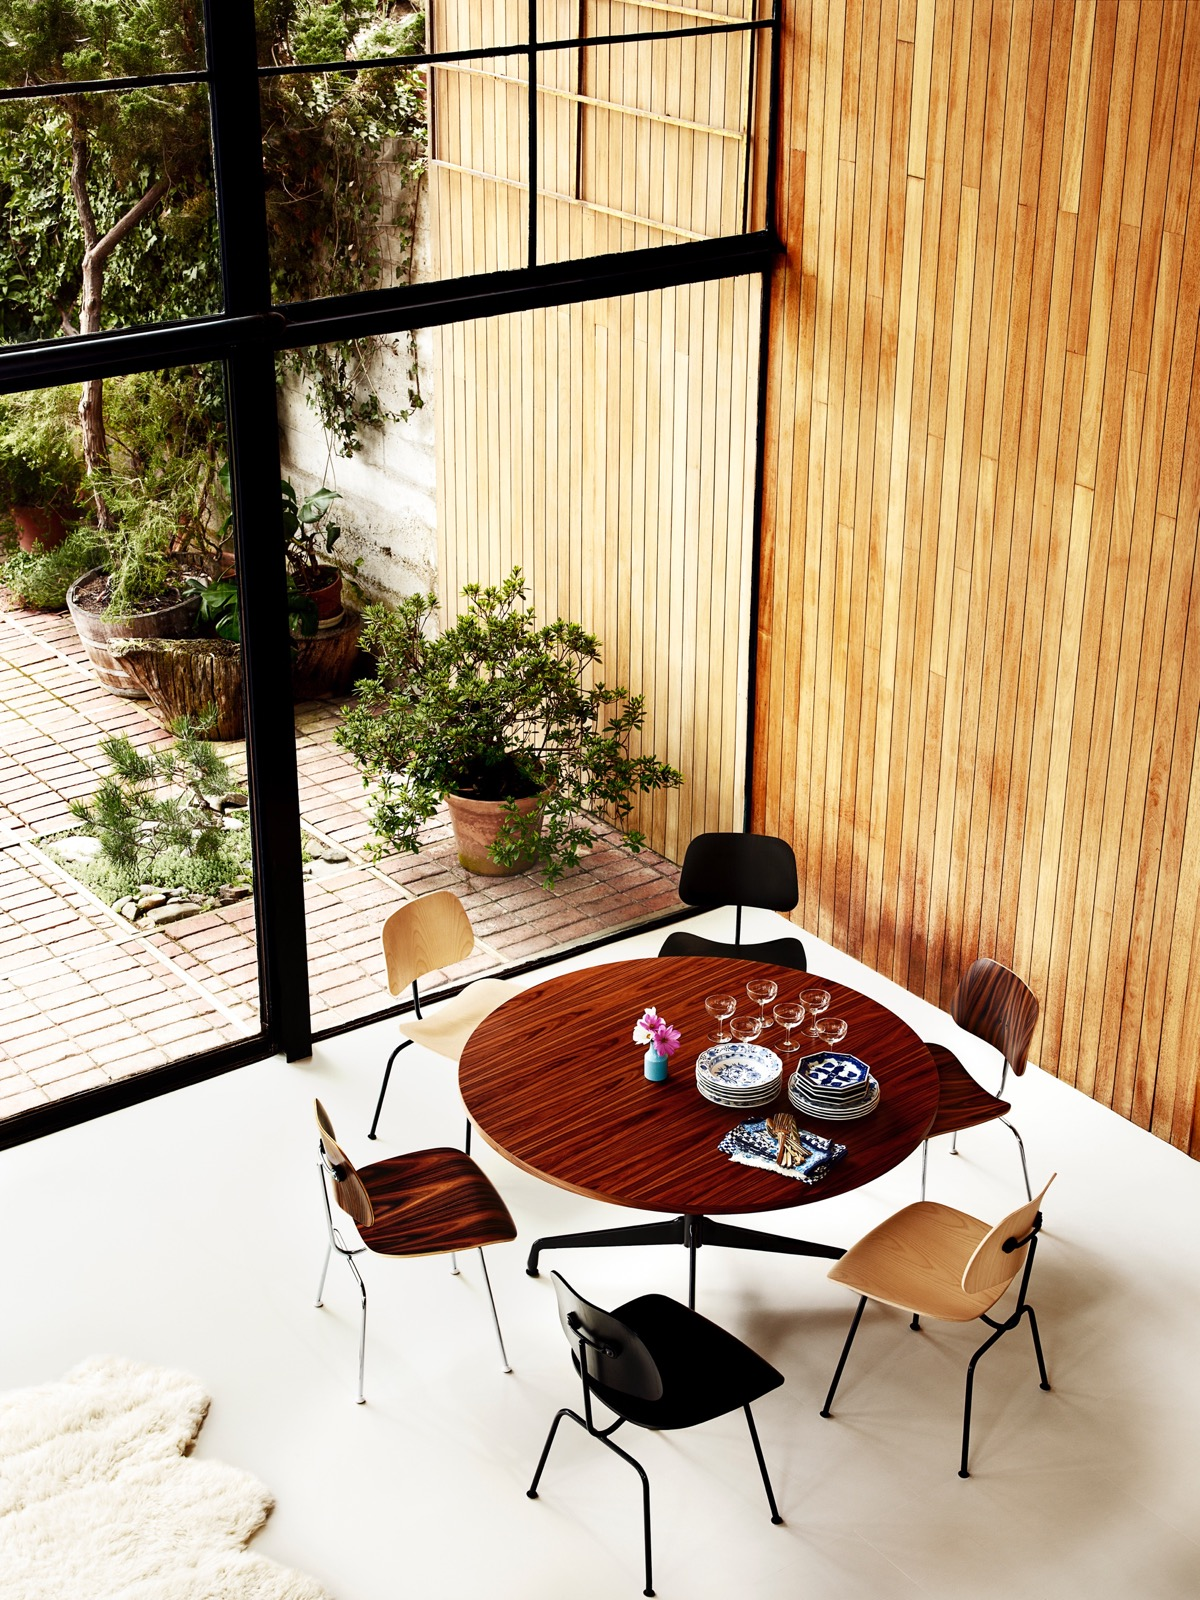 Eames-Round-Segmented-Table-Large-Wooden-Top-Classic-Luxury